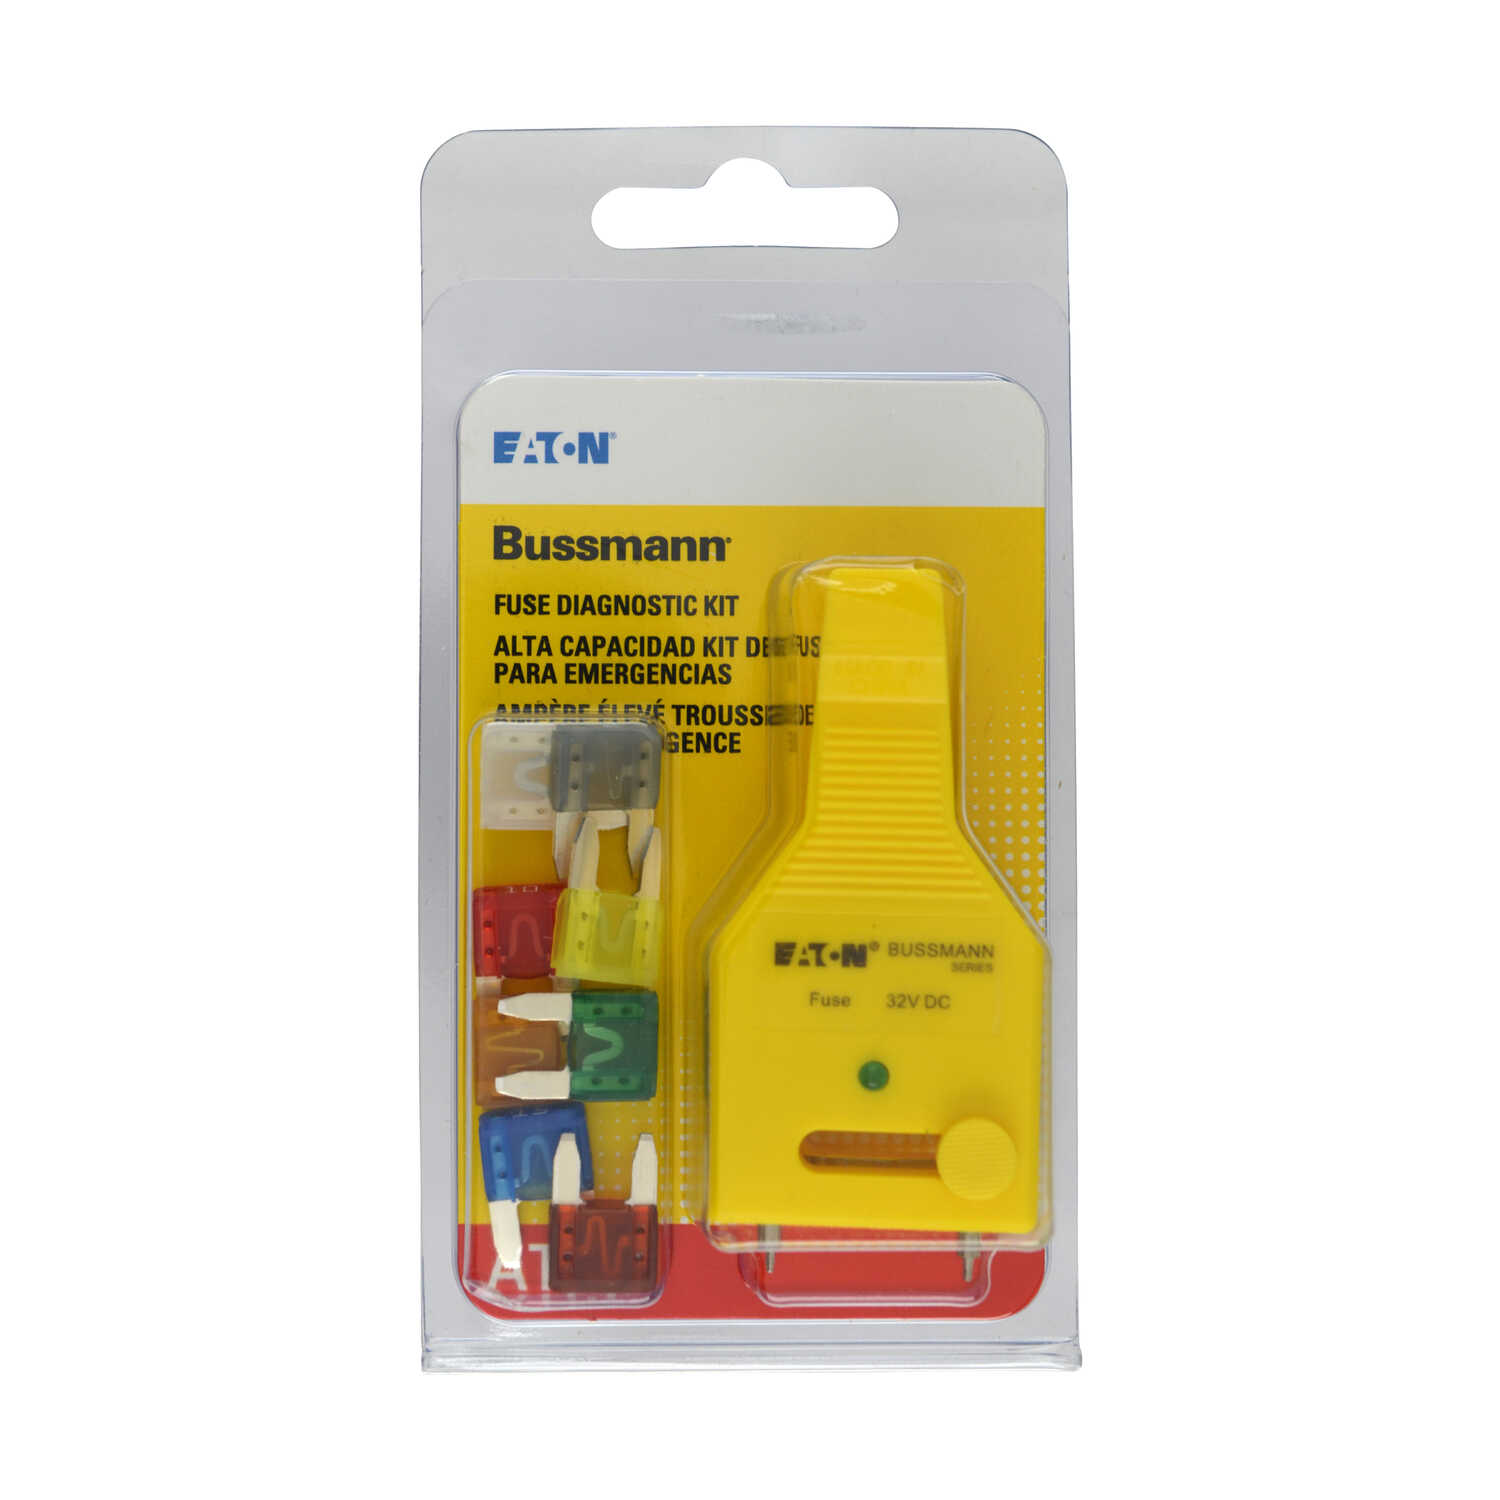 Bussmann  50 amps ATC  Fuse Assortment  6 pk